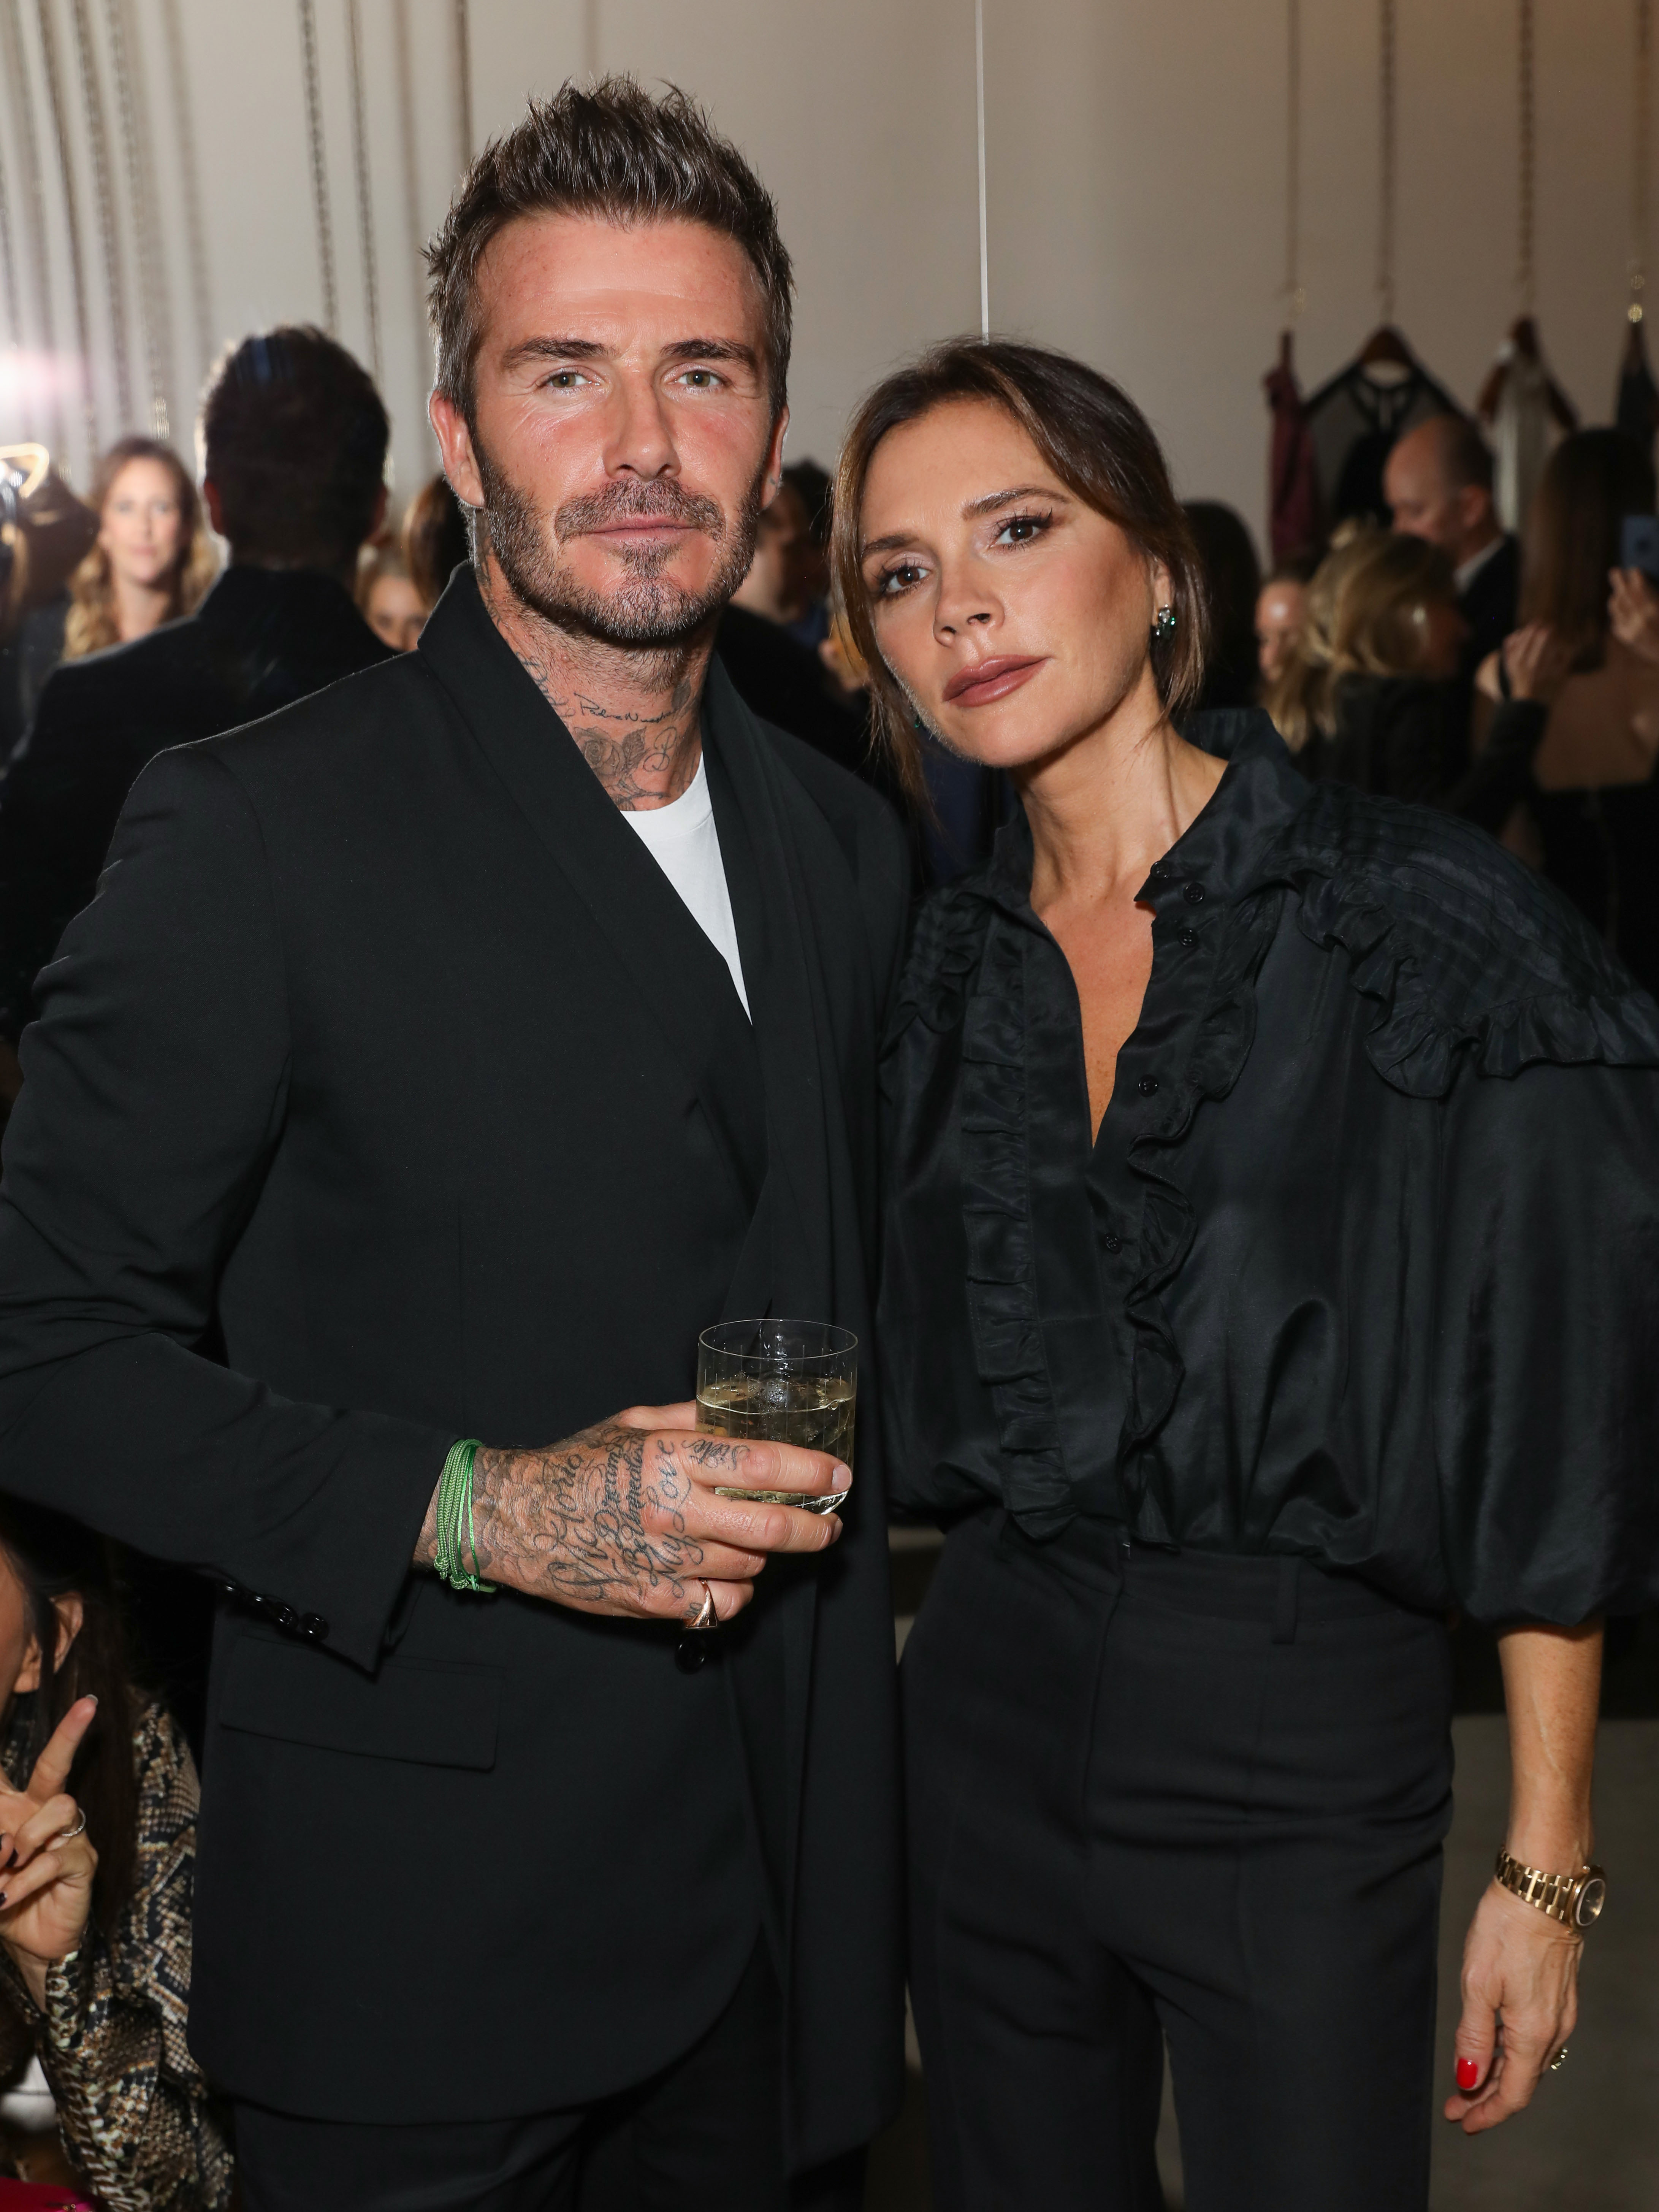 David Beckham Puts Wife Victoria To Shame Over This